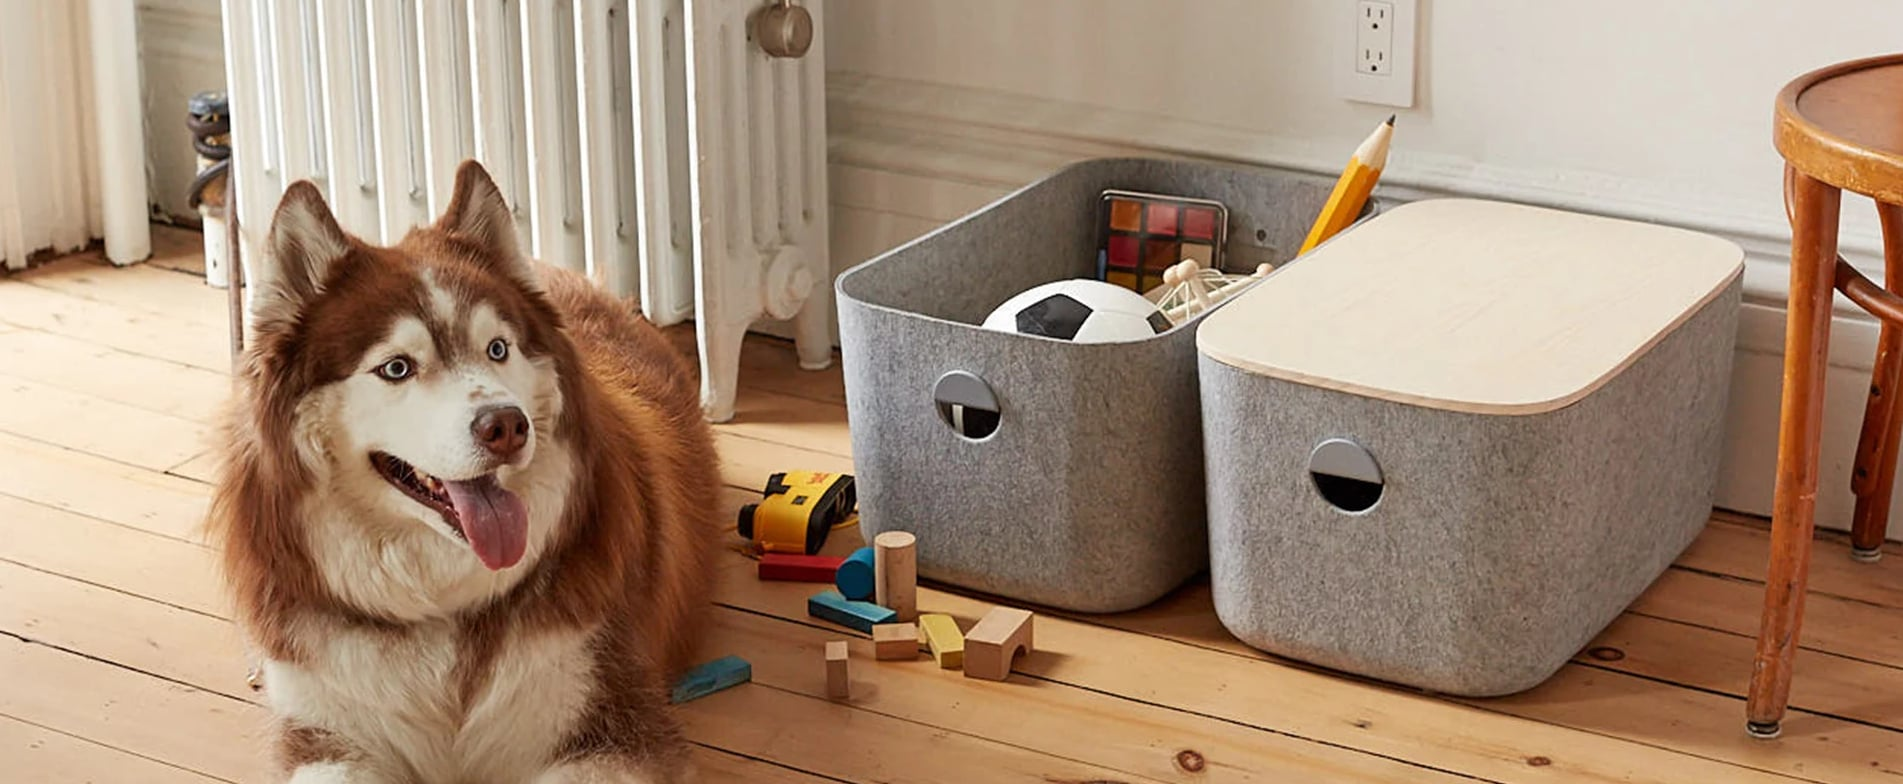 Best Stylish Storage Bins That Aren't Ugly